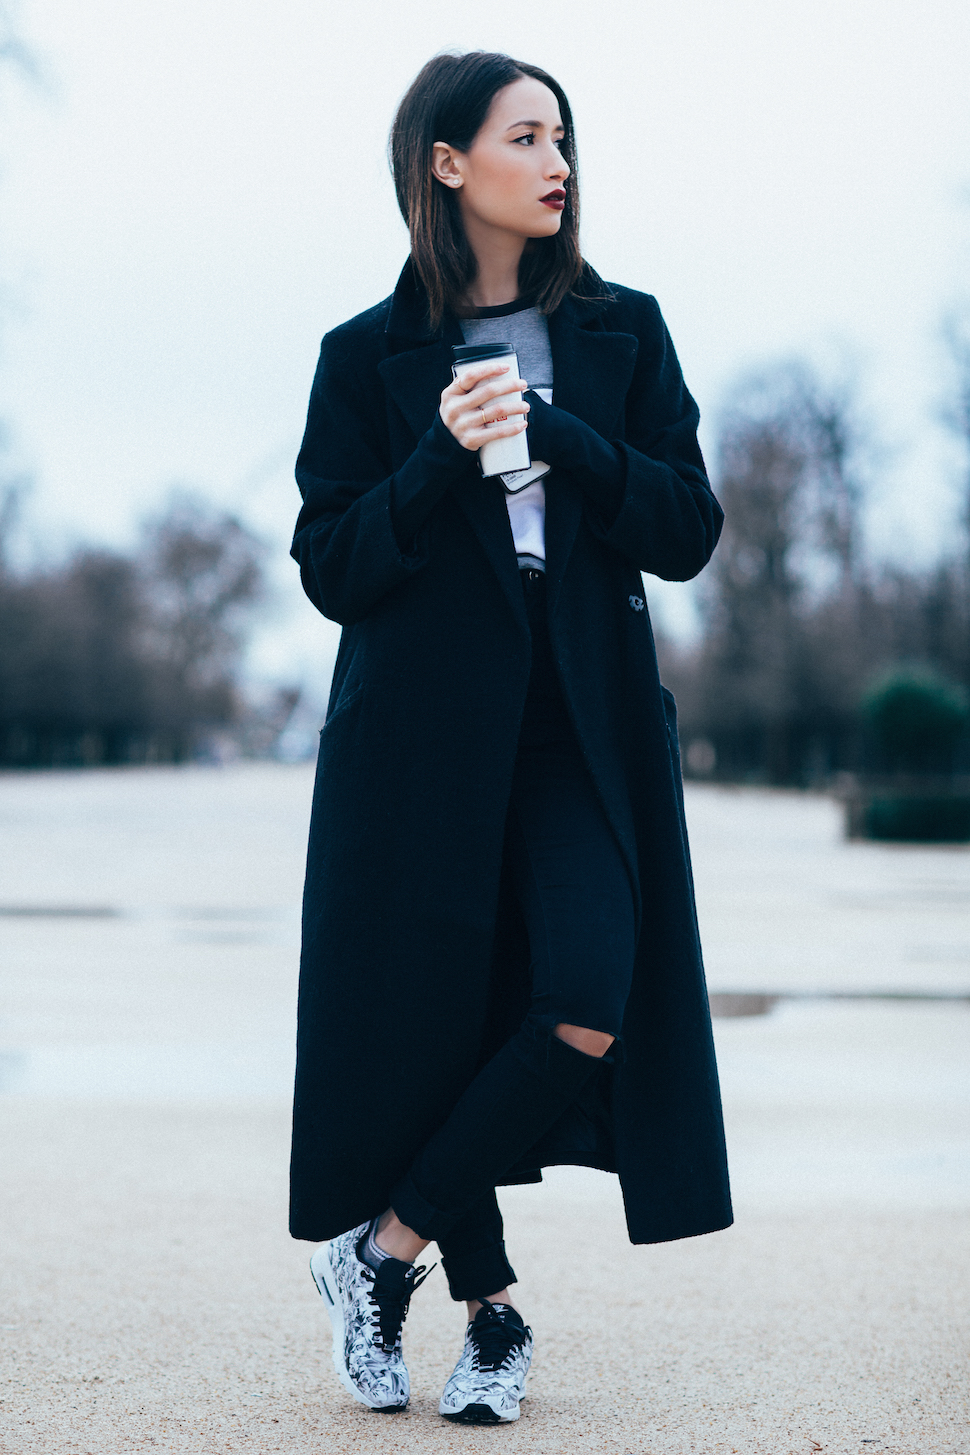 Just The Design: Alexandra Guerain is wearing a black trench coat with black skinny jeans and Nike sneakers